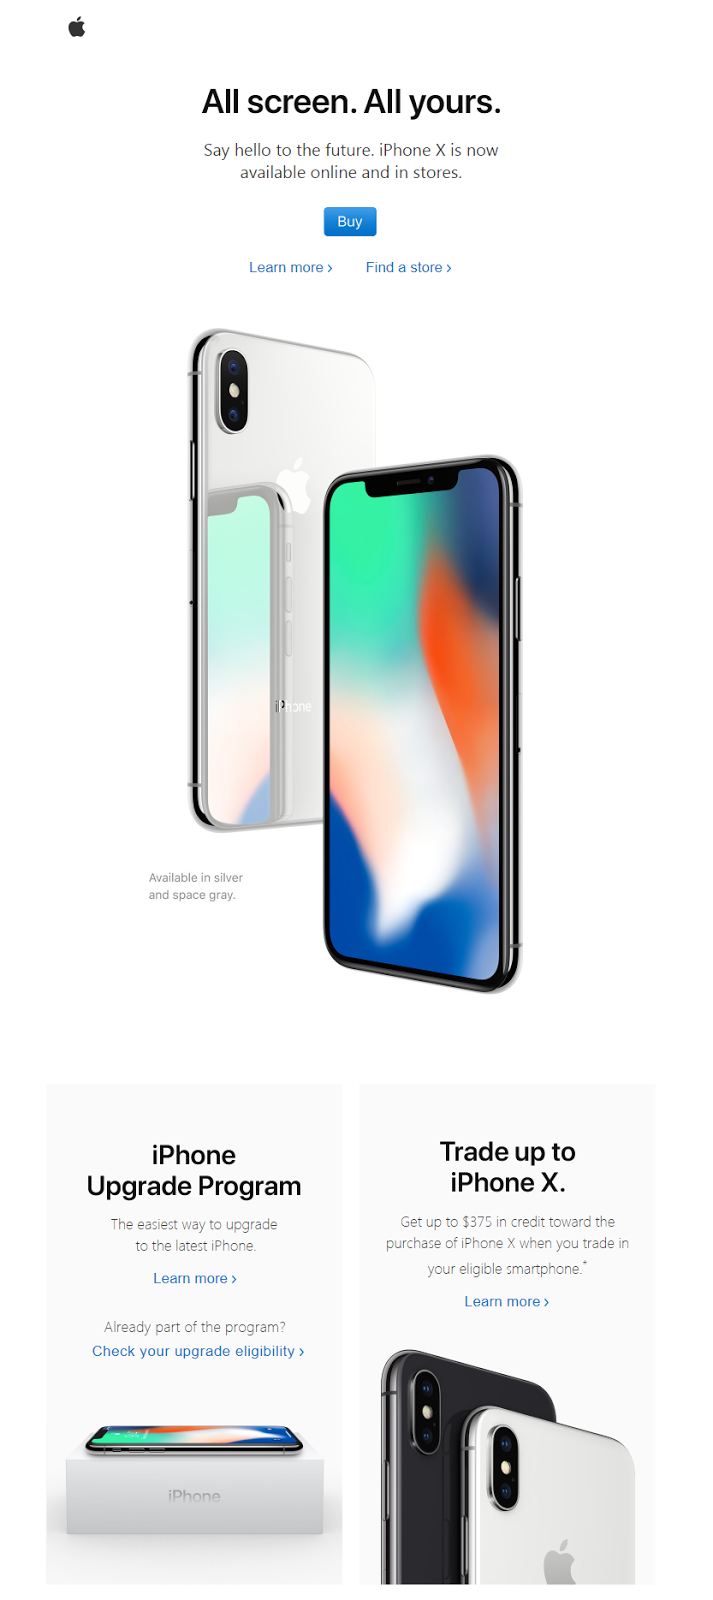 Apple Product Announcement Newsletter